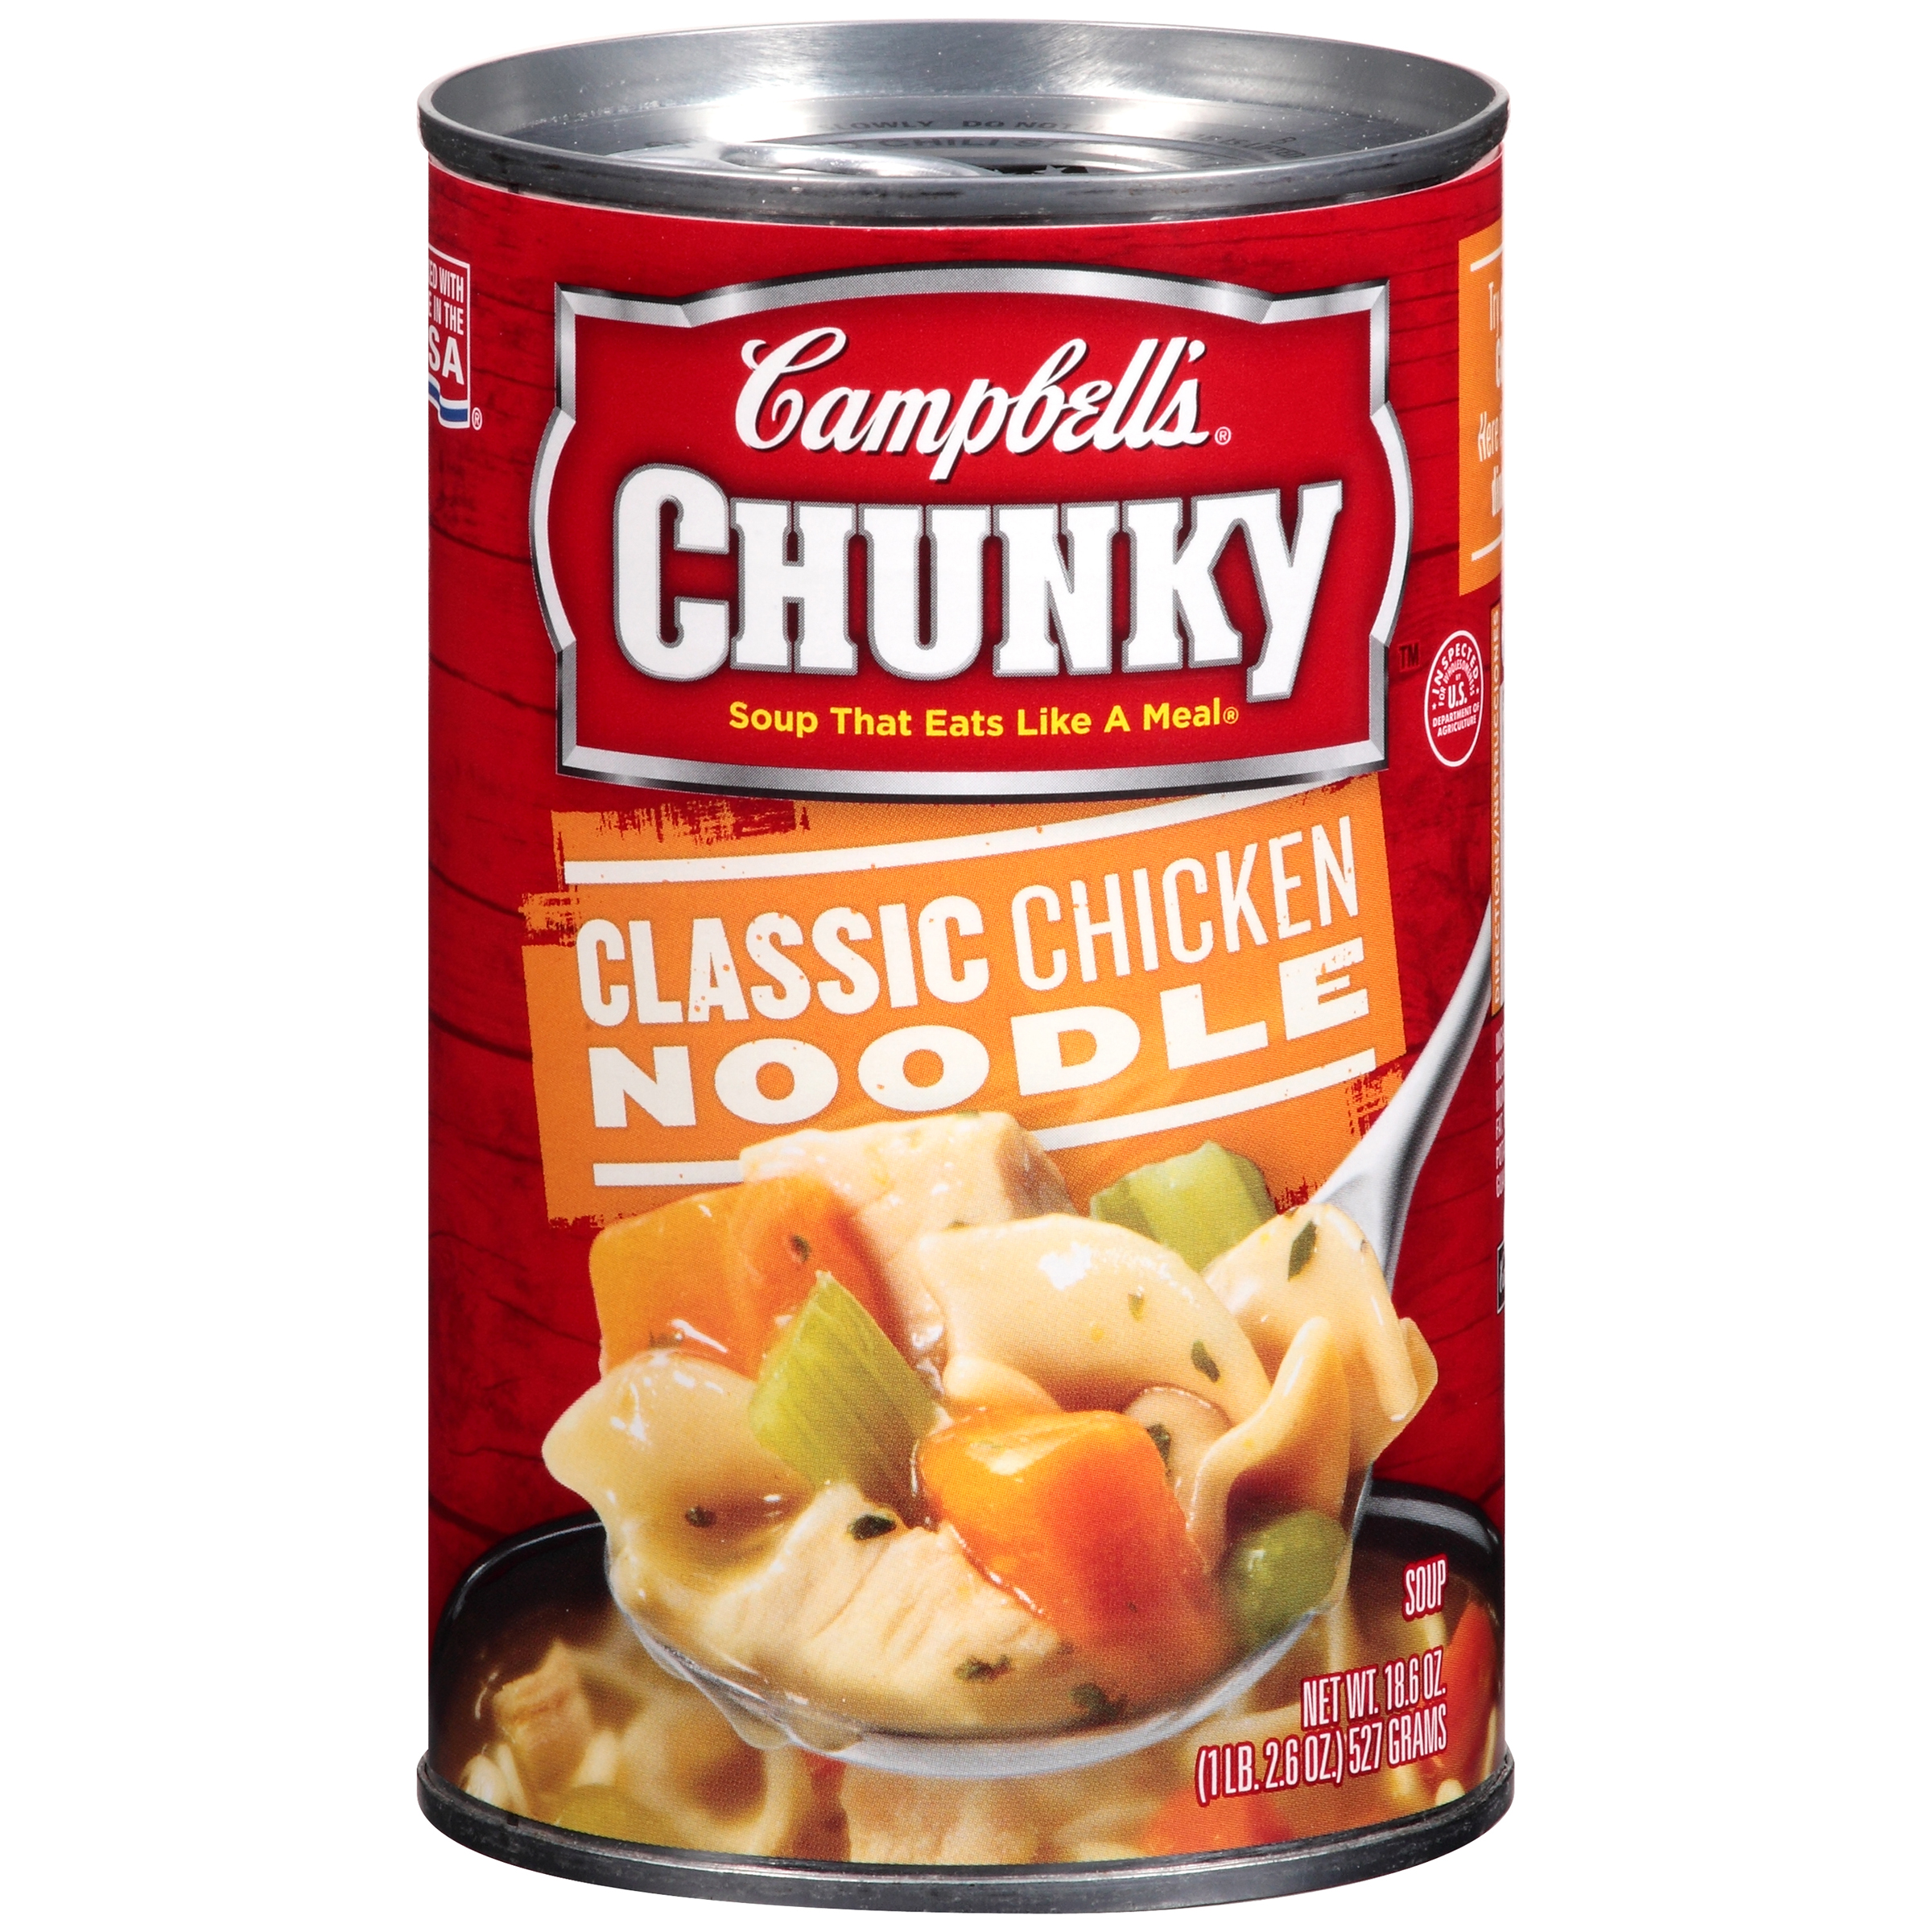 Campbell's Chunky Classic Chicken Noodle Soup 18.6oz